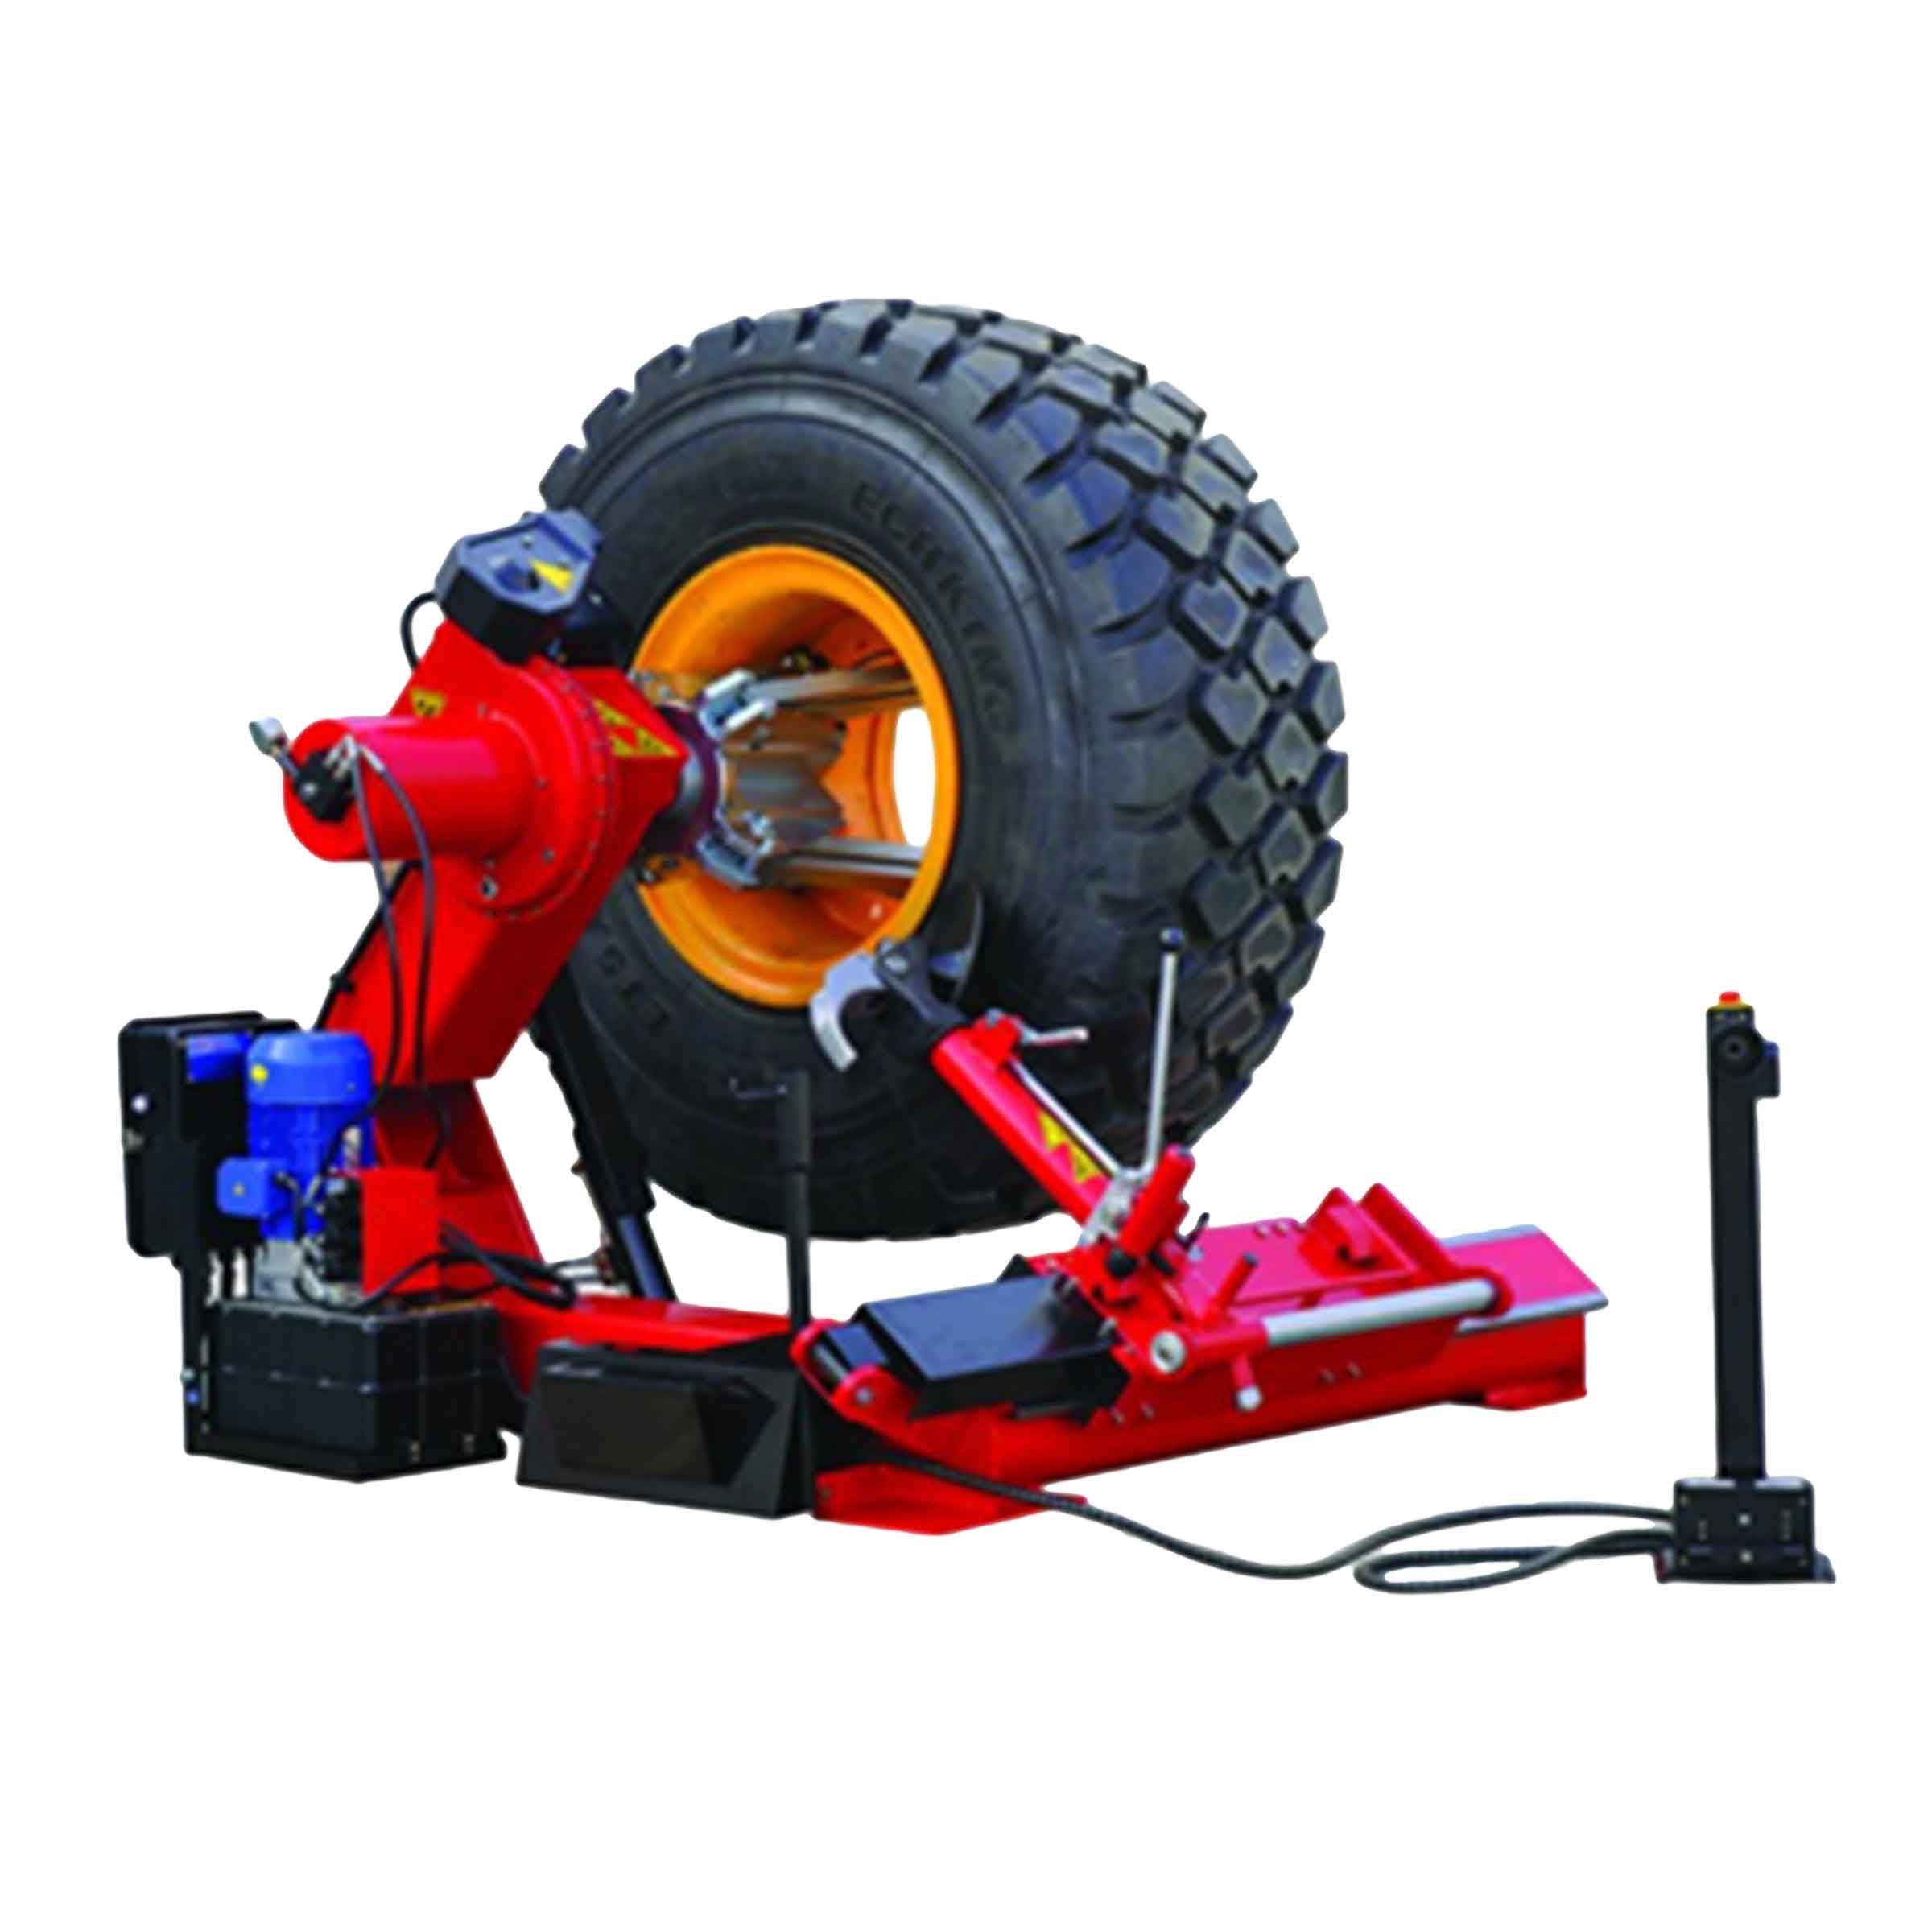 Big Red H/D TRE0598 3PH Tyre Changing Machine. You Need 1